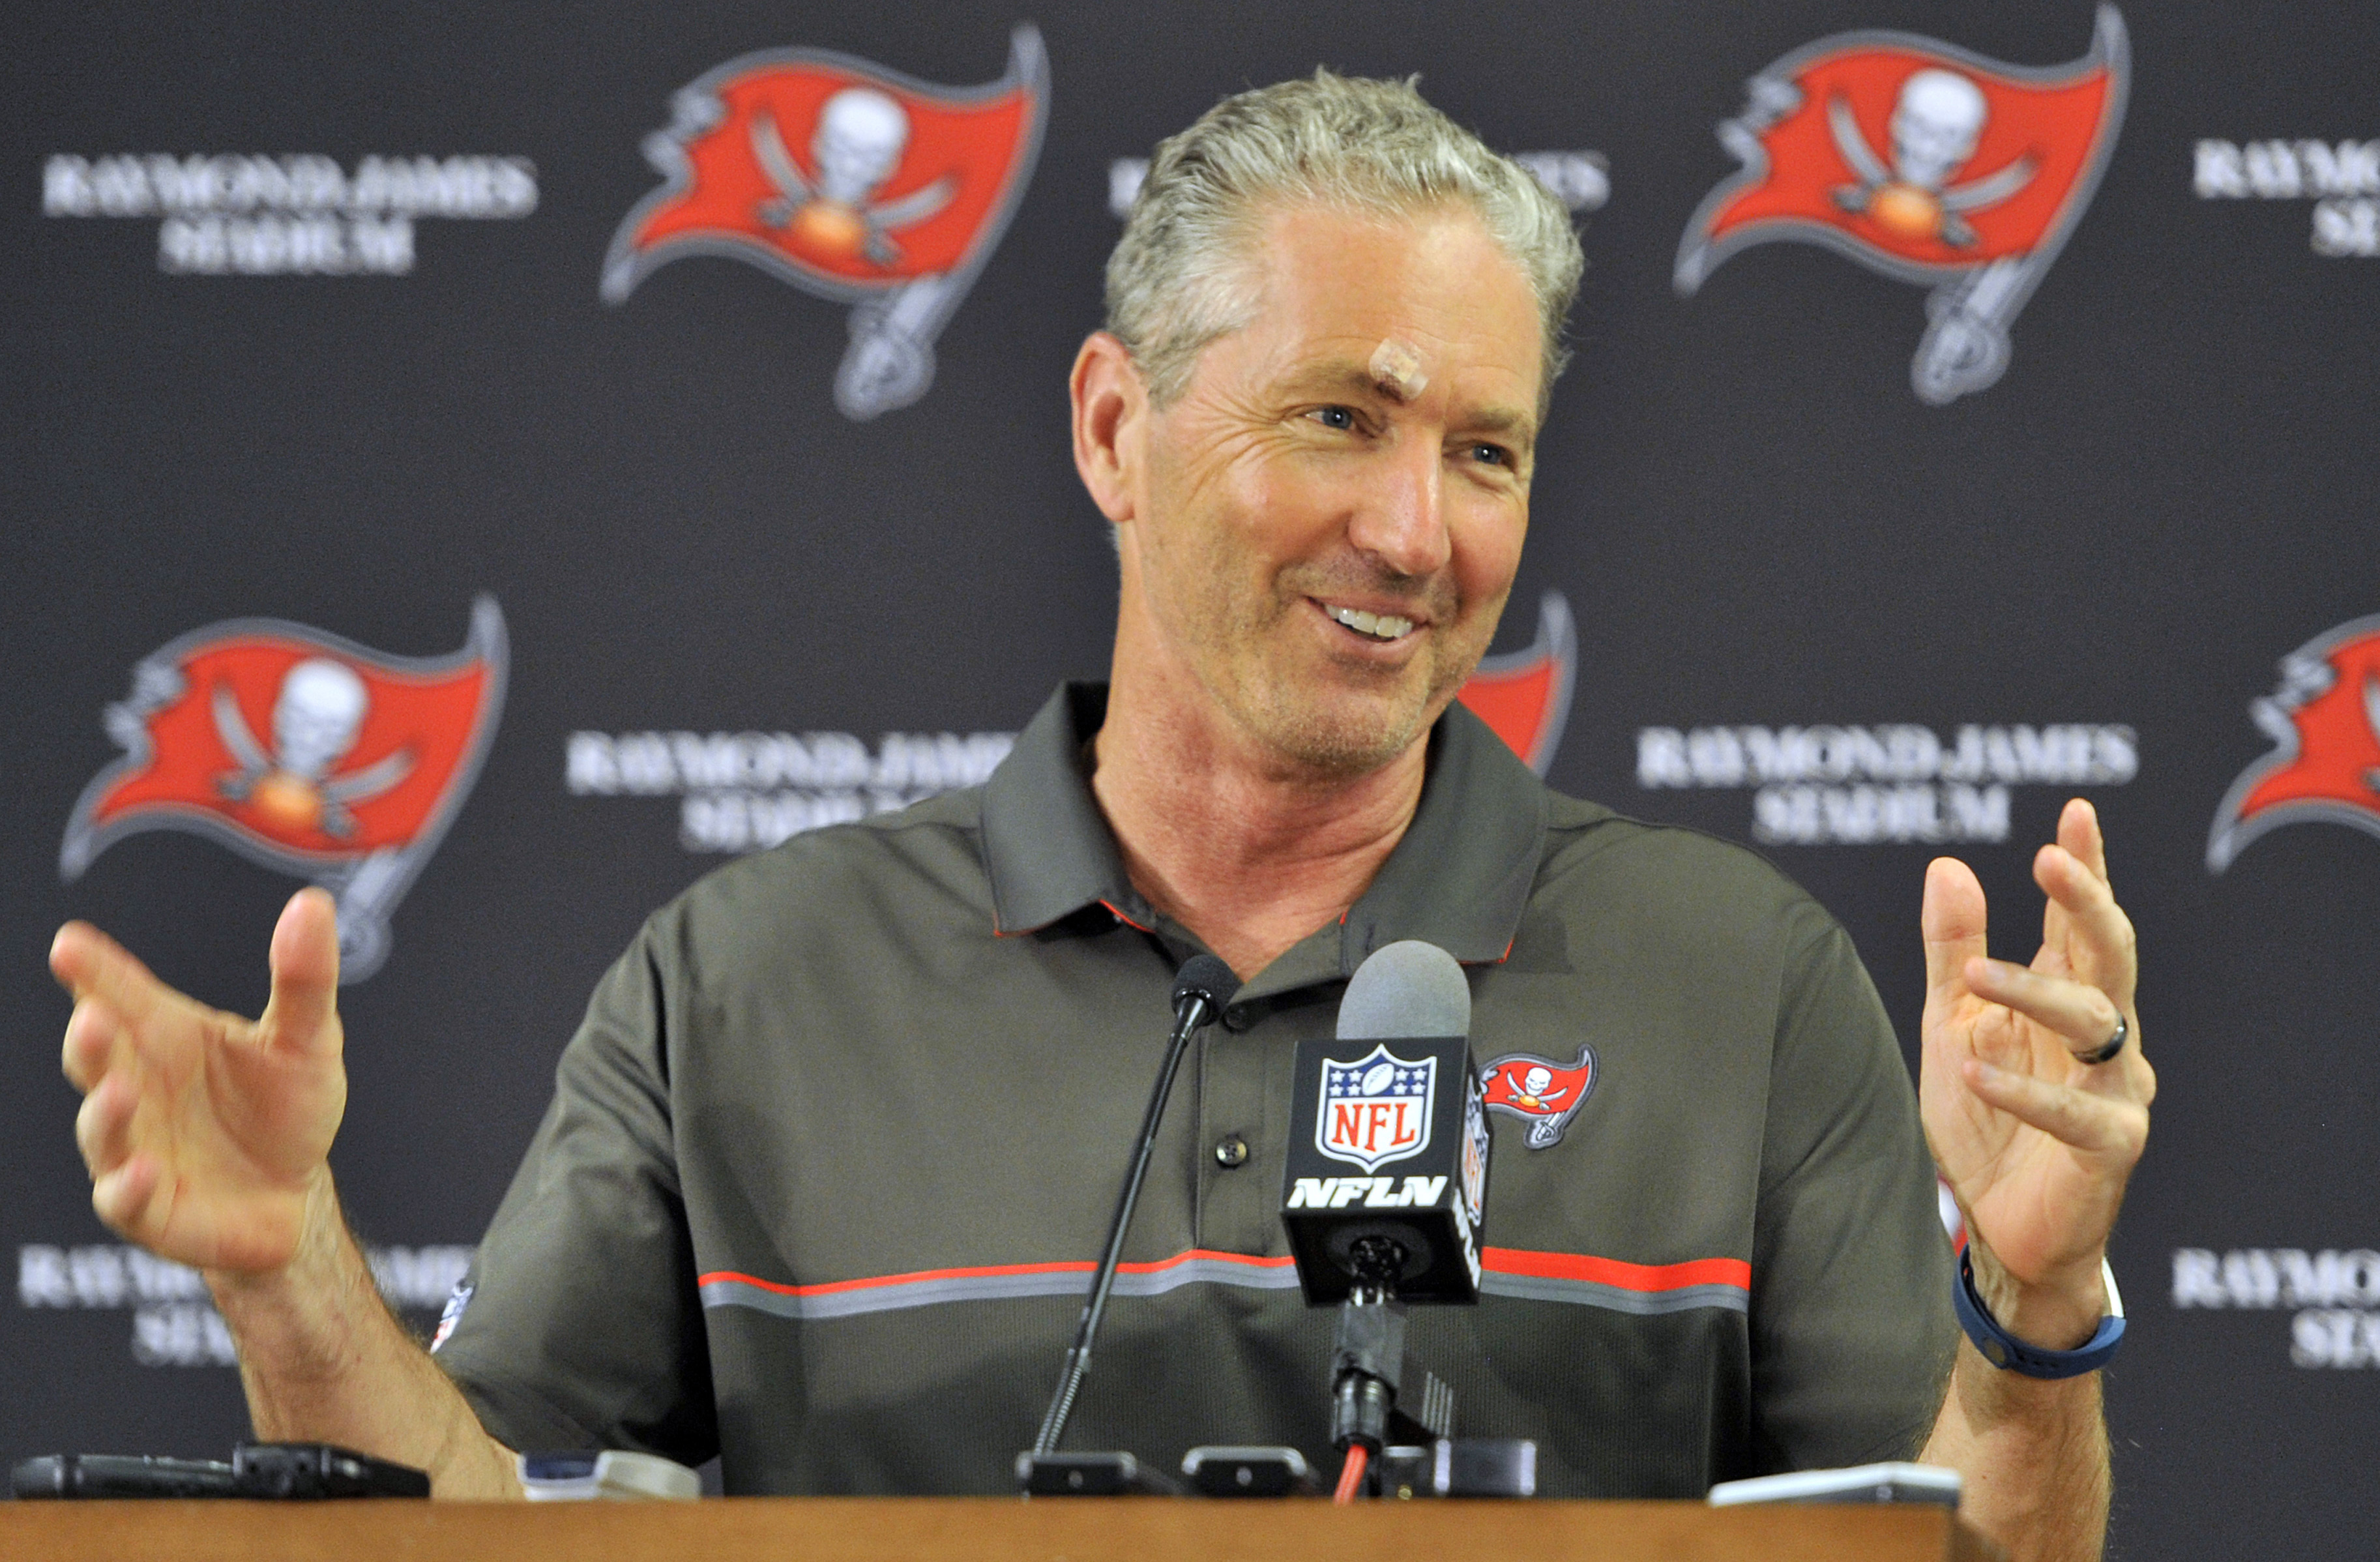 FILE - In a Sunday, Nov. 13, 2016 file photo, Tampa Bay Buccaneers head coach Dirk Koetter smiles during a post game news conference after the team defeated the Chicago Bears 36-10 during an NFL football game, in Tampa, Fla. The Buccaneers (5-5) have won